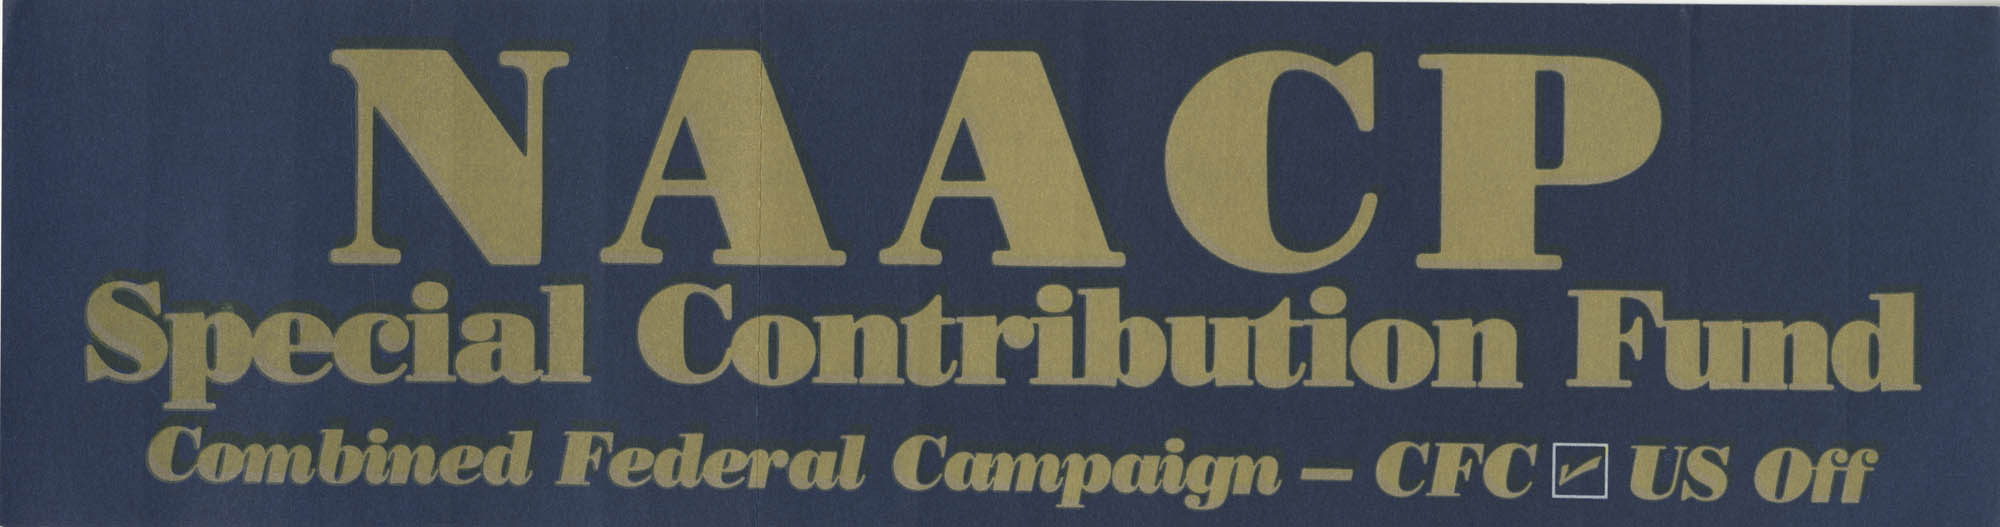 NAACP Special Contribution Fund, Combined Federal Campaign, CFC, US Off